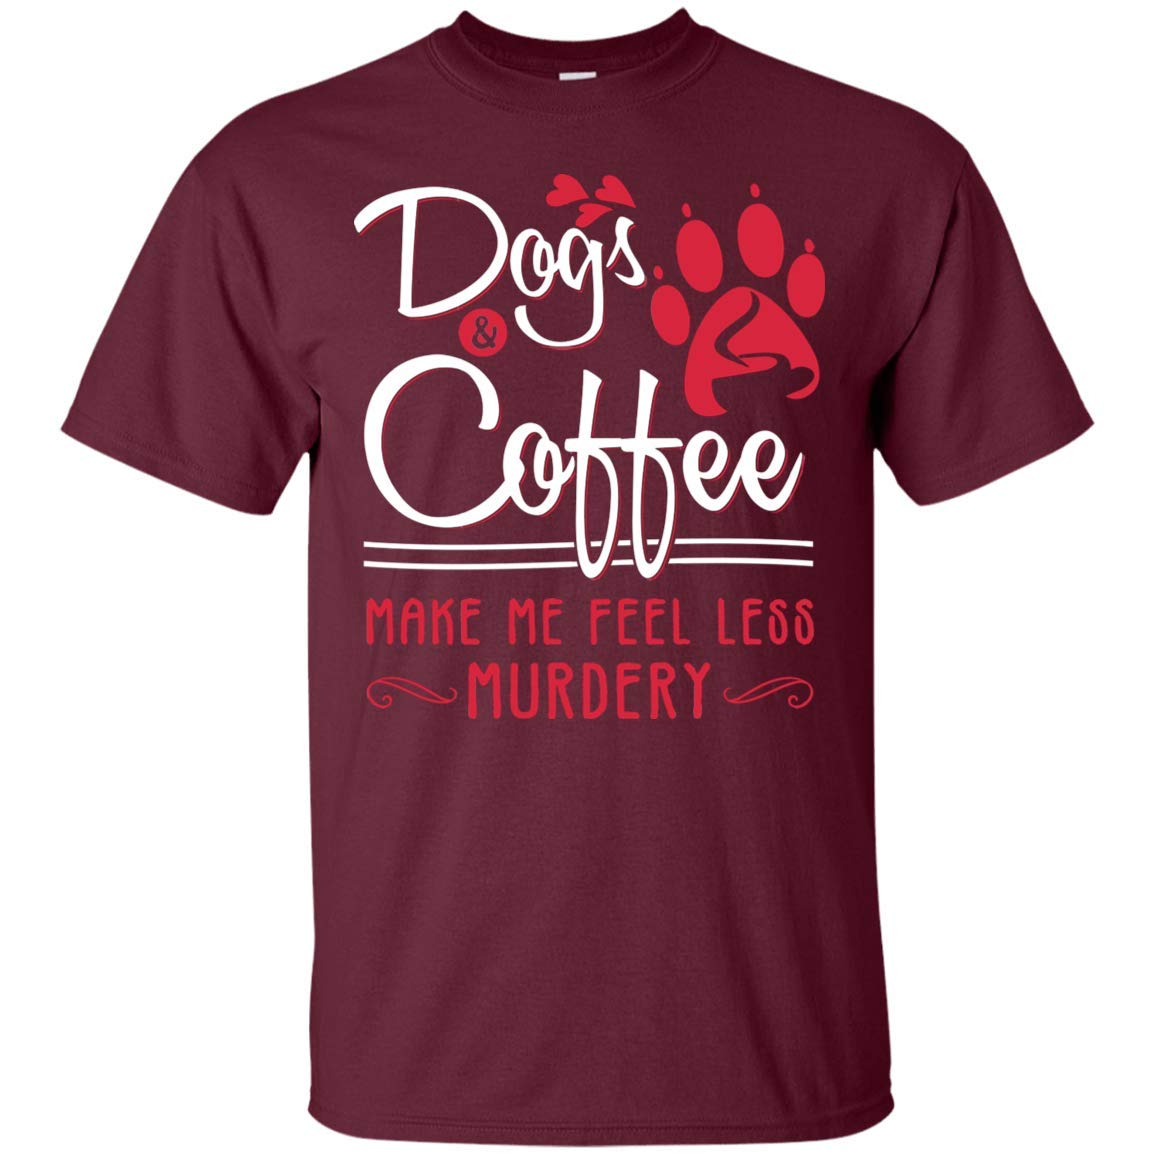 Dogs And Coffee Make Me Feel Less Murdery T Shirt Funny Shirt